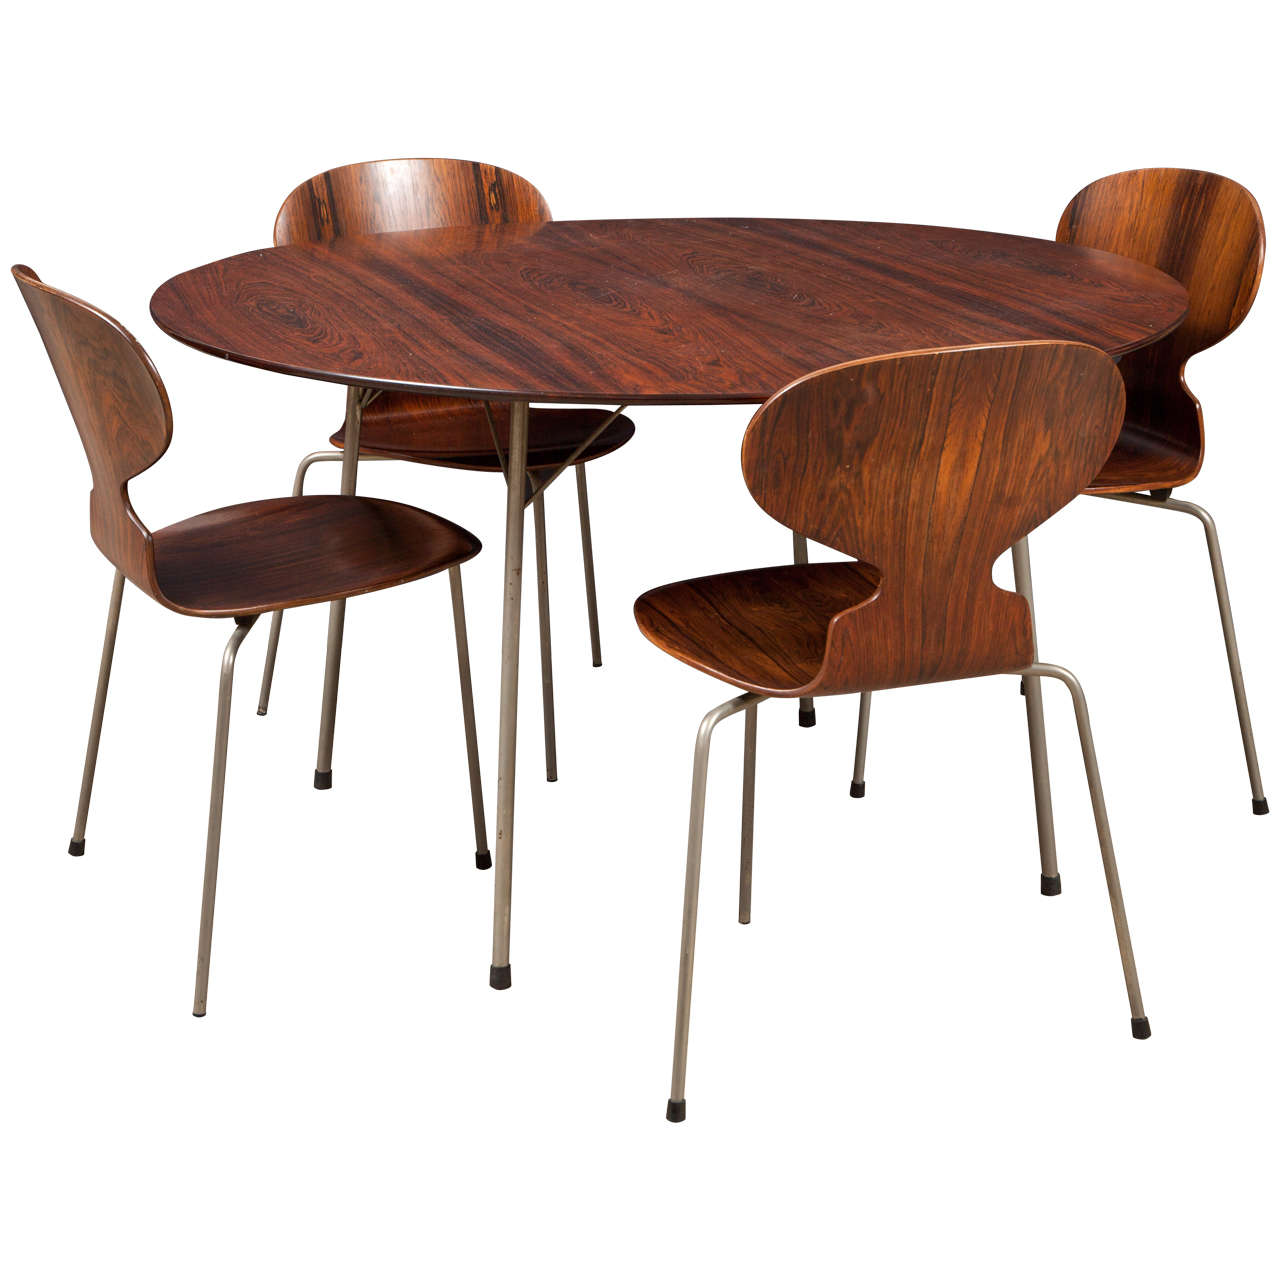 Ant rosewood table and dining chair set by arne jacobsen for Dining room tables 1940s